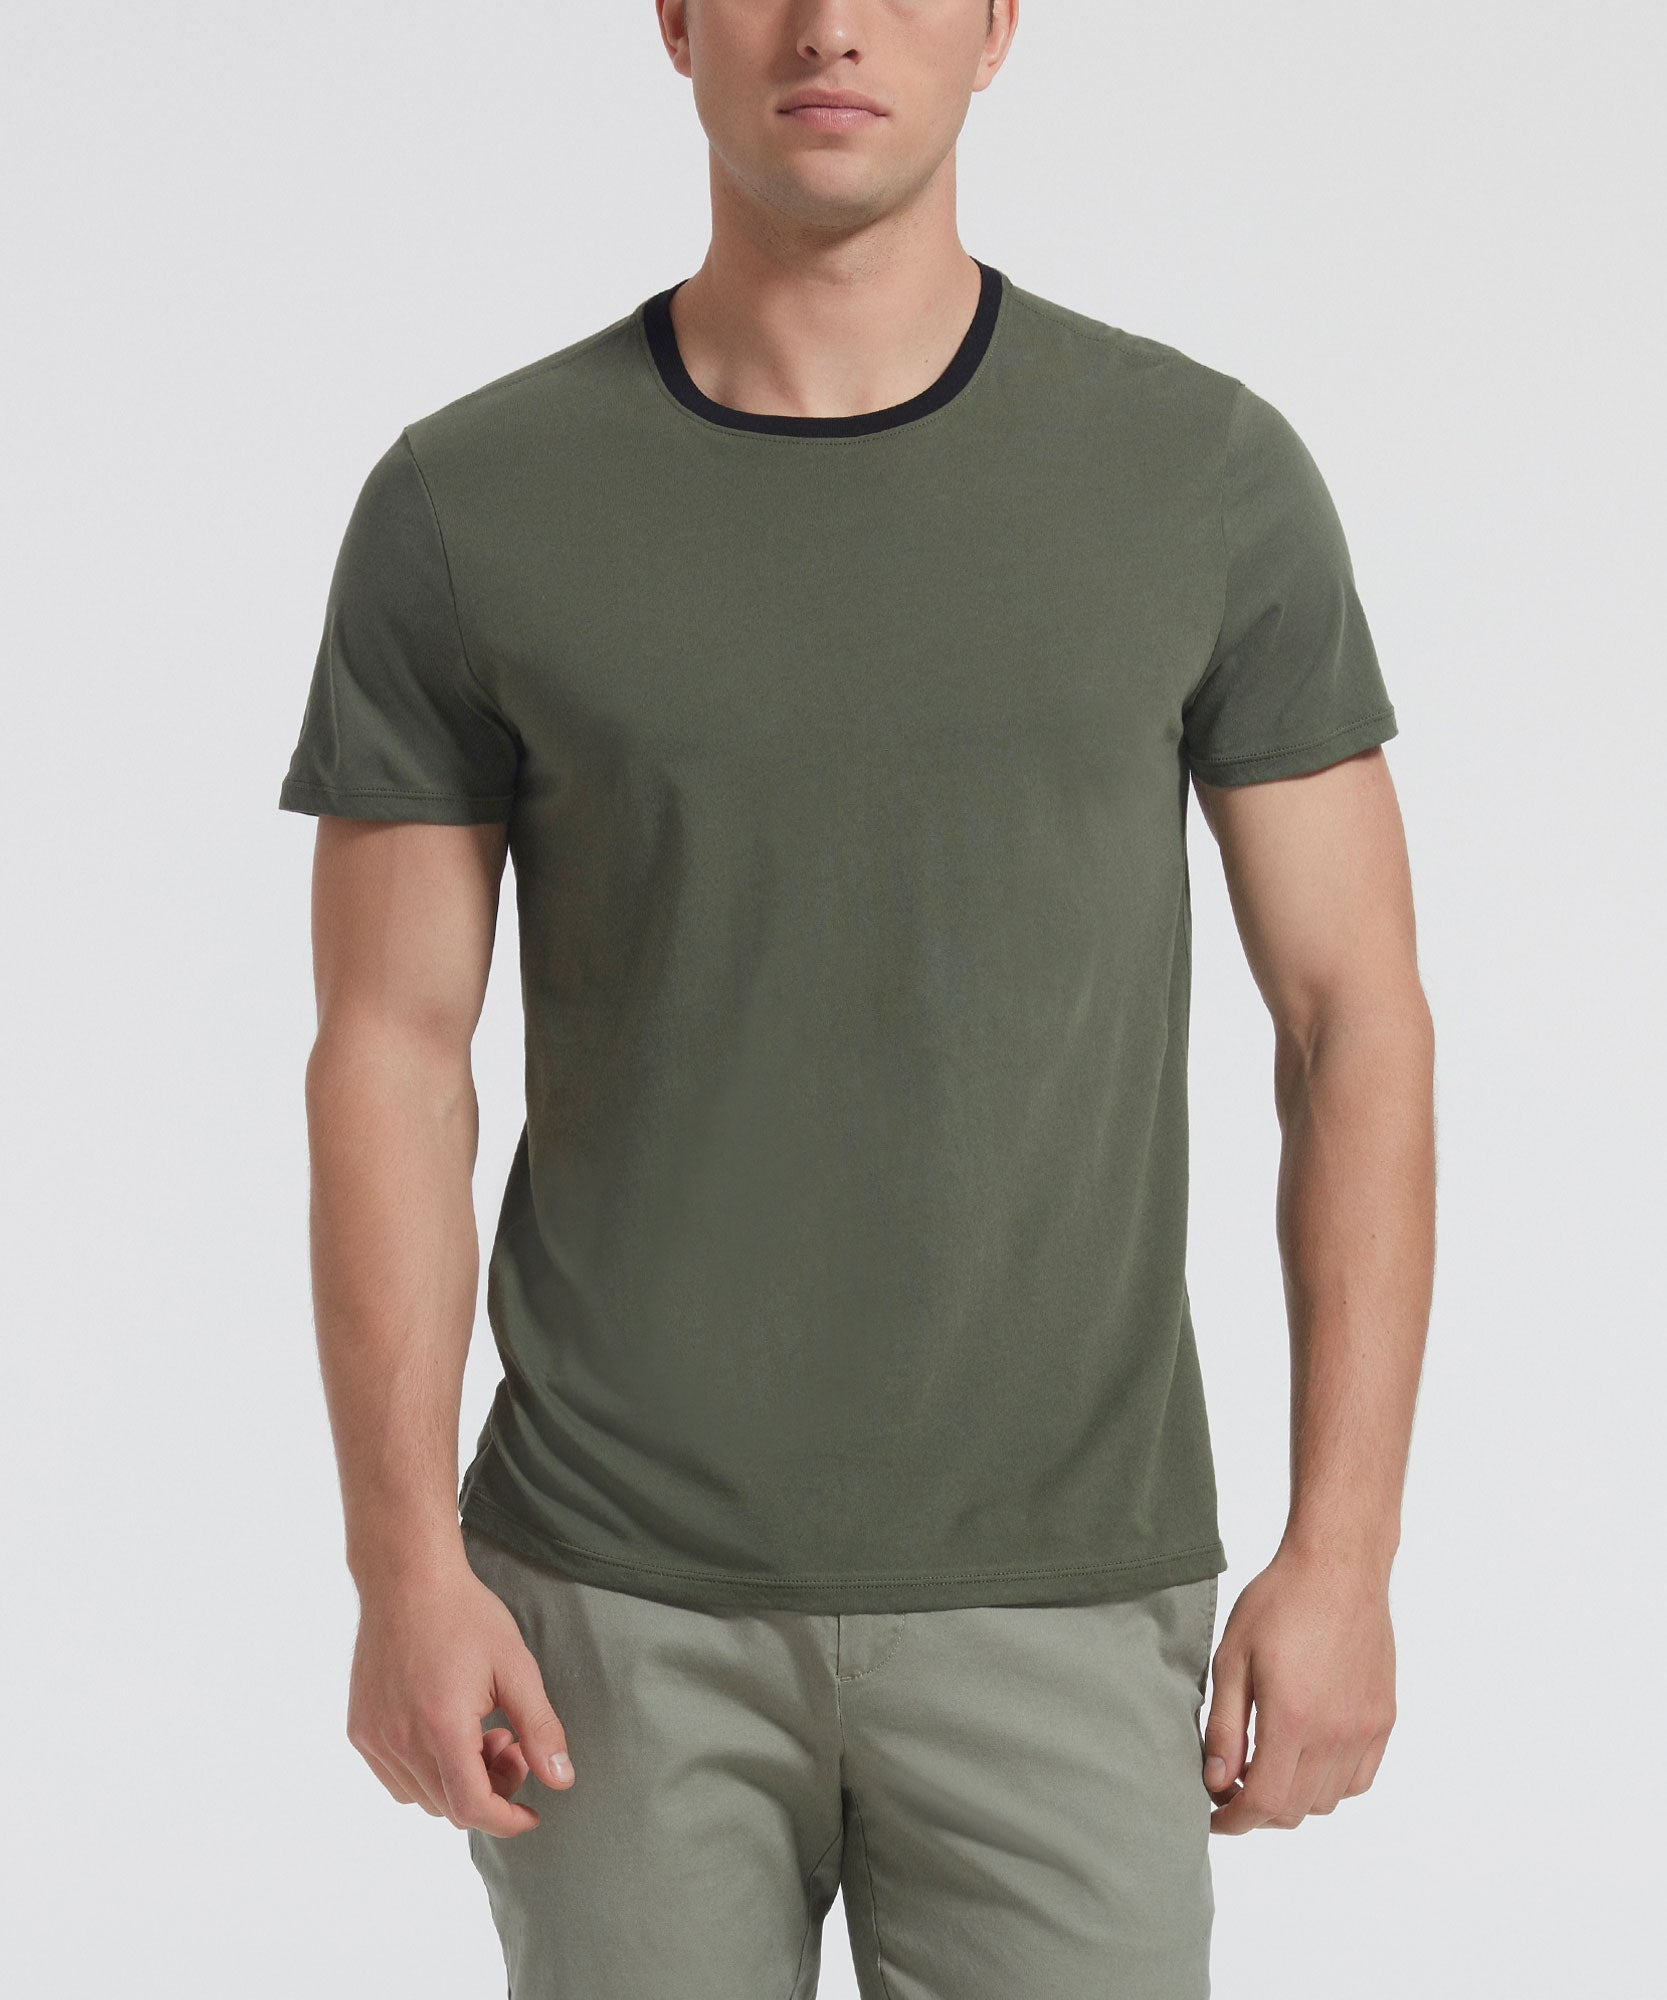 Beetle Green Classic Jersey Contrast Band Crew Neck Tee - Men's Luxe Cotton Tee by ATM Anthony Thomas Melillo